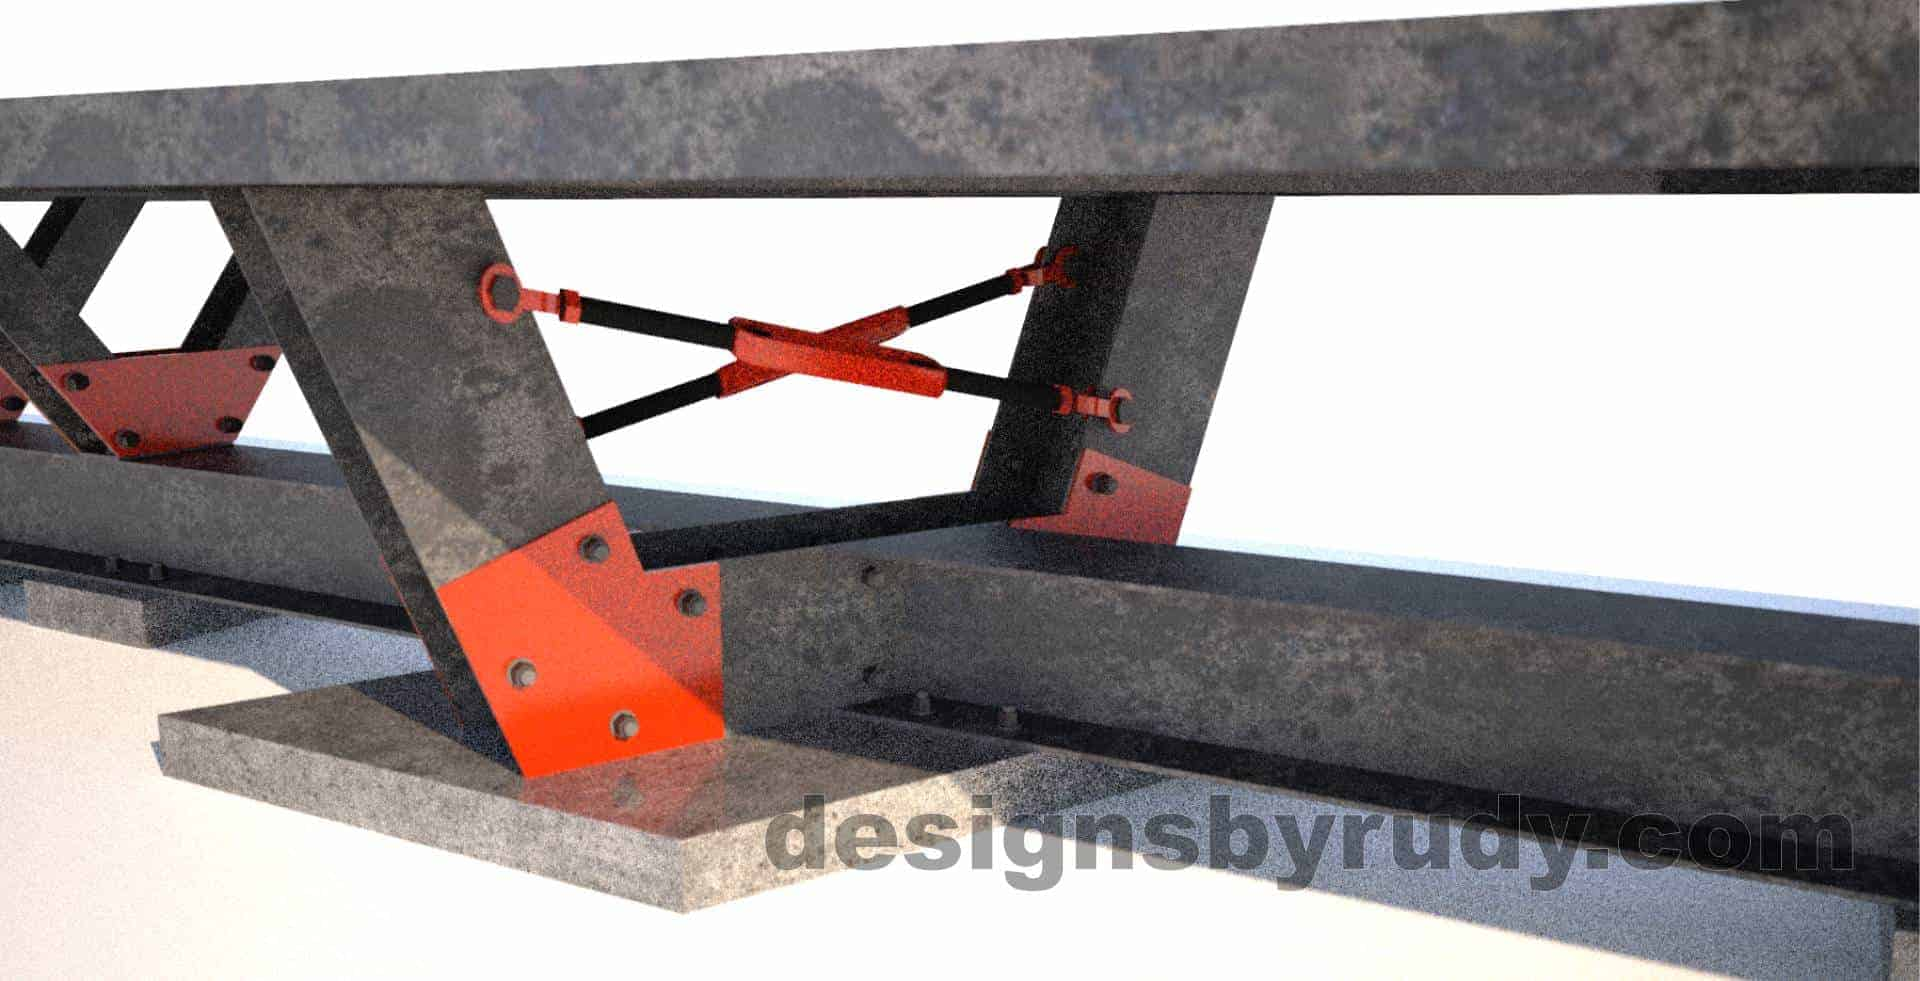 Steel base concrete top conference table design and fabrication by Designs by Rudy (4)